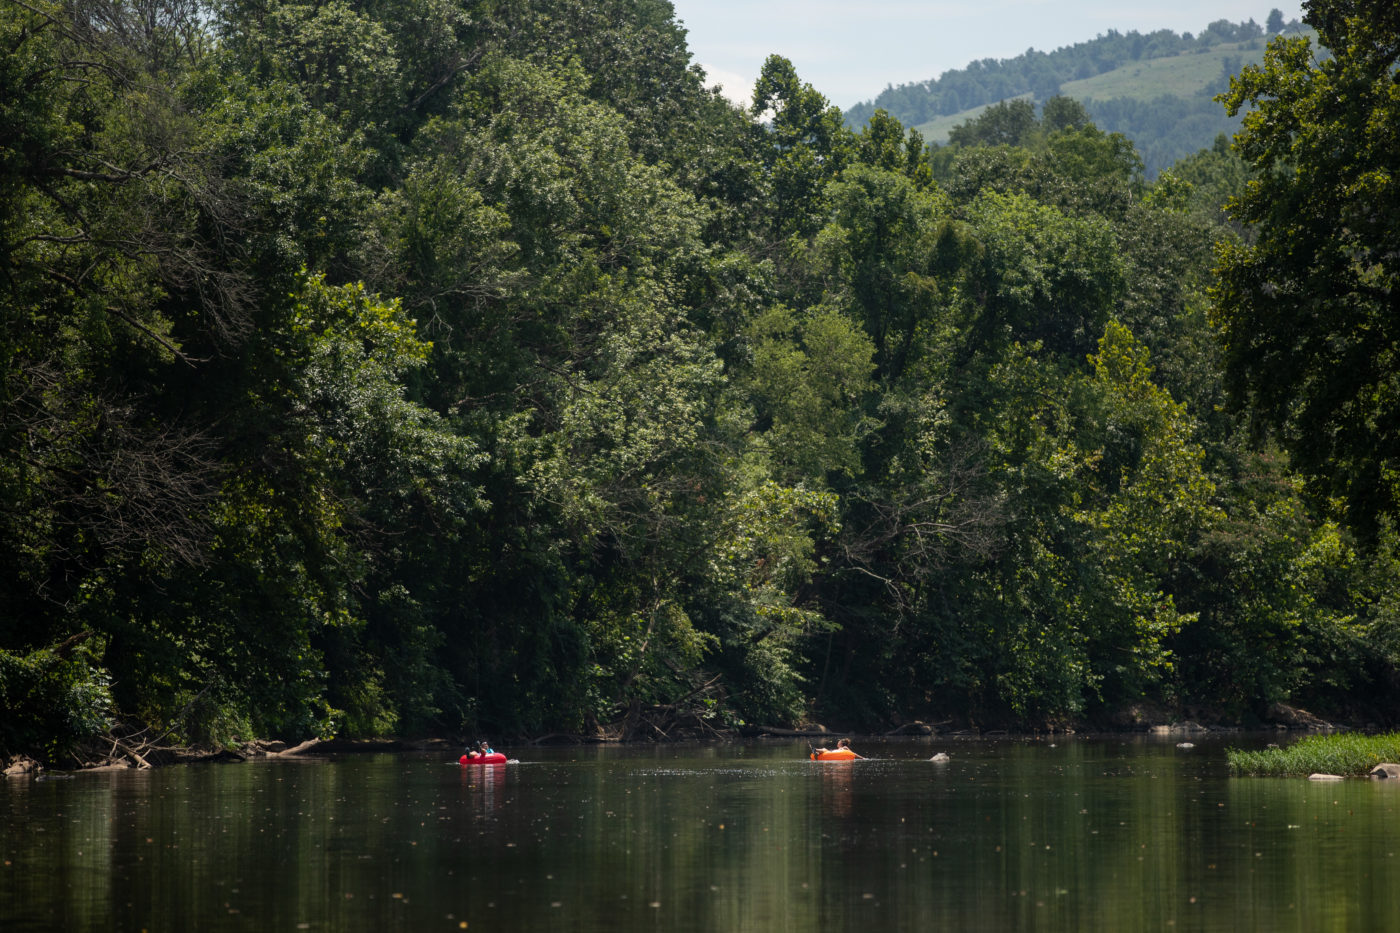 People go tubing on the Rivanna River in Albemarle County.